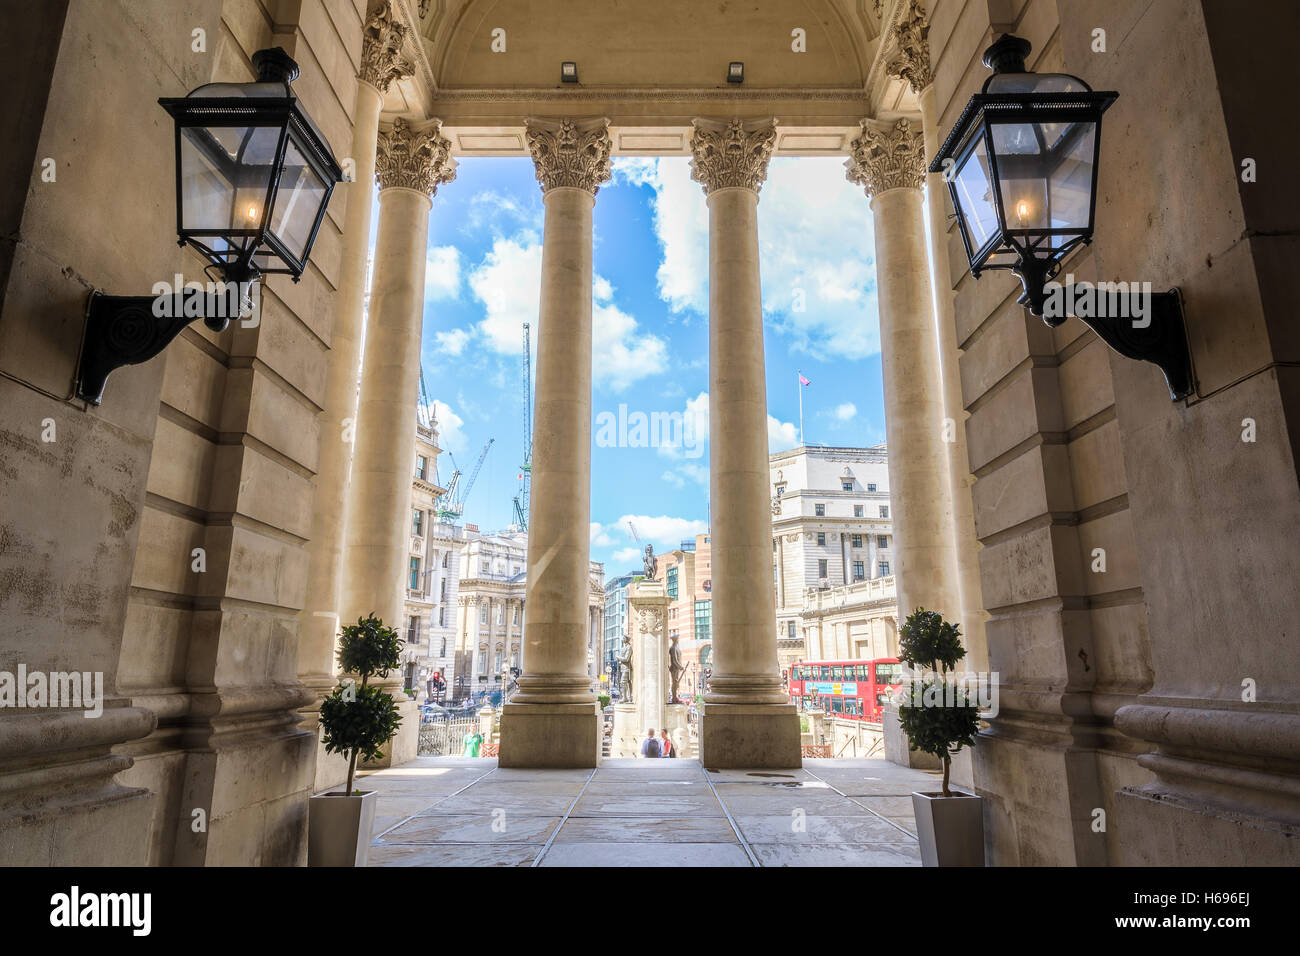 London, UK - August 06, 2016 - Bank junction viewed from Royal Exchange - Stock Image